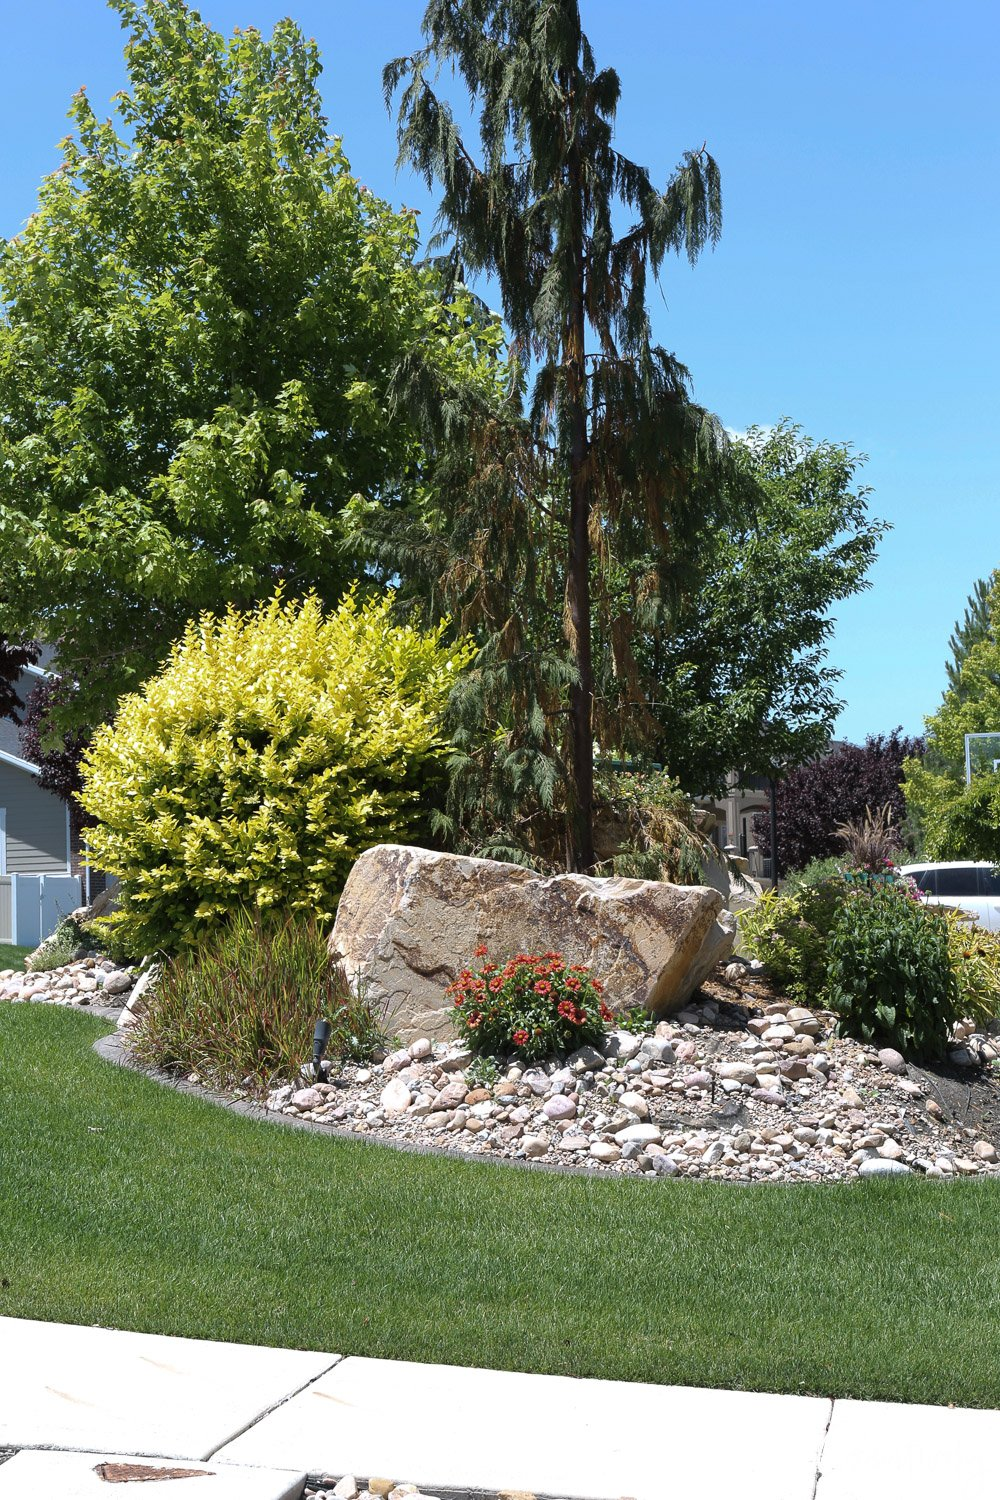 Landscaping with boulders and rocks.